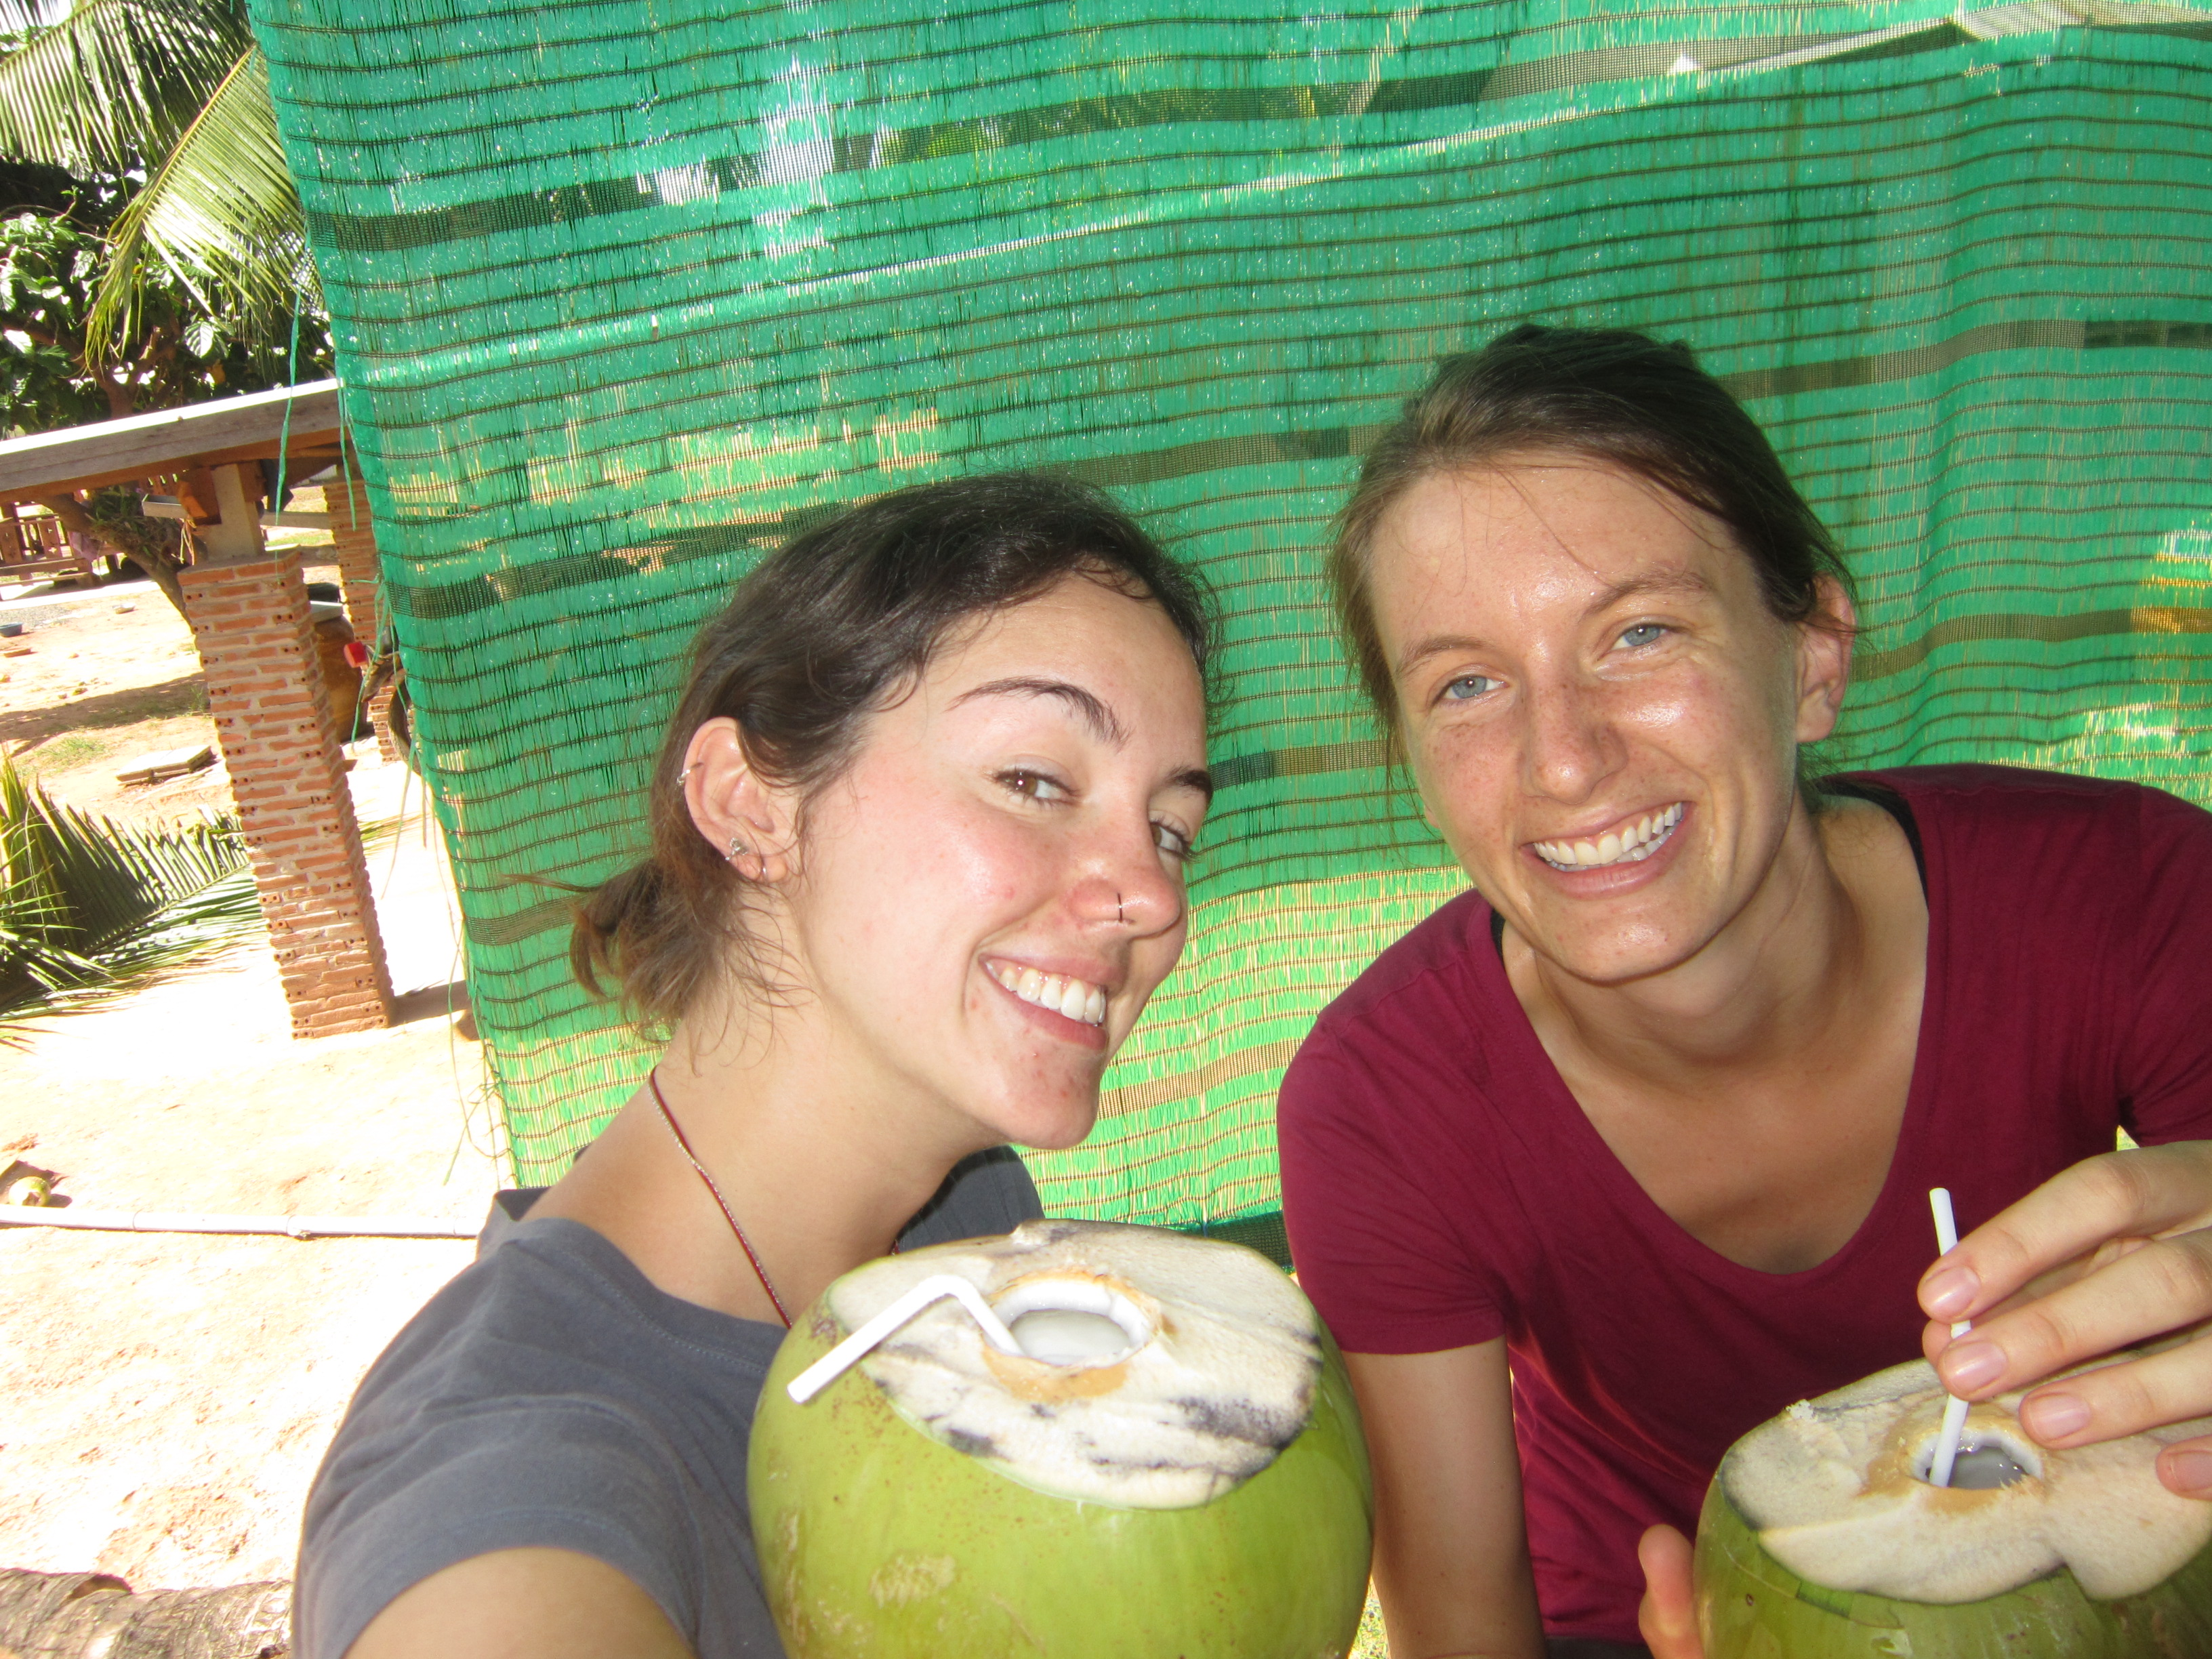 Drinking coconuts and laughing in Nong Weang, Thailand